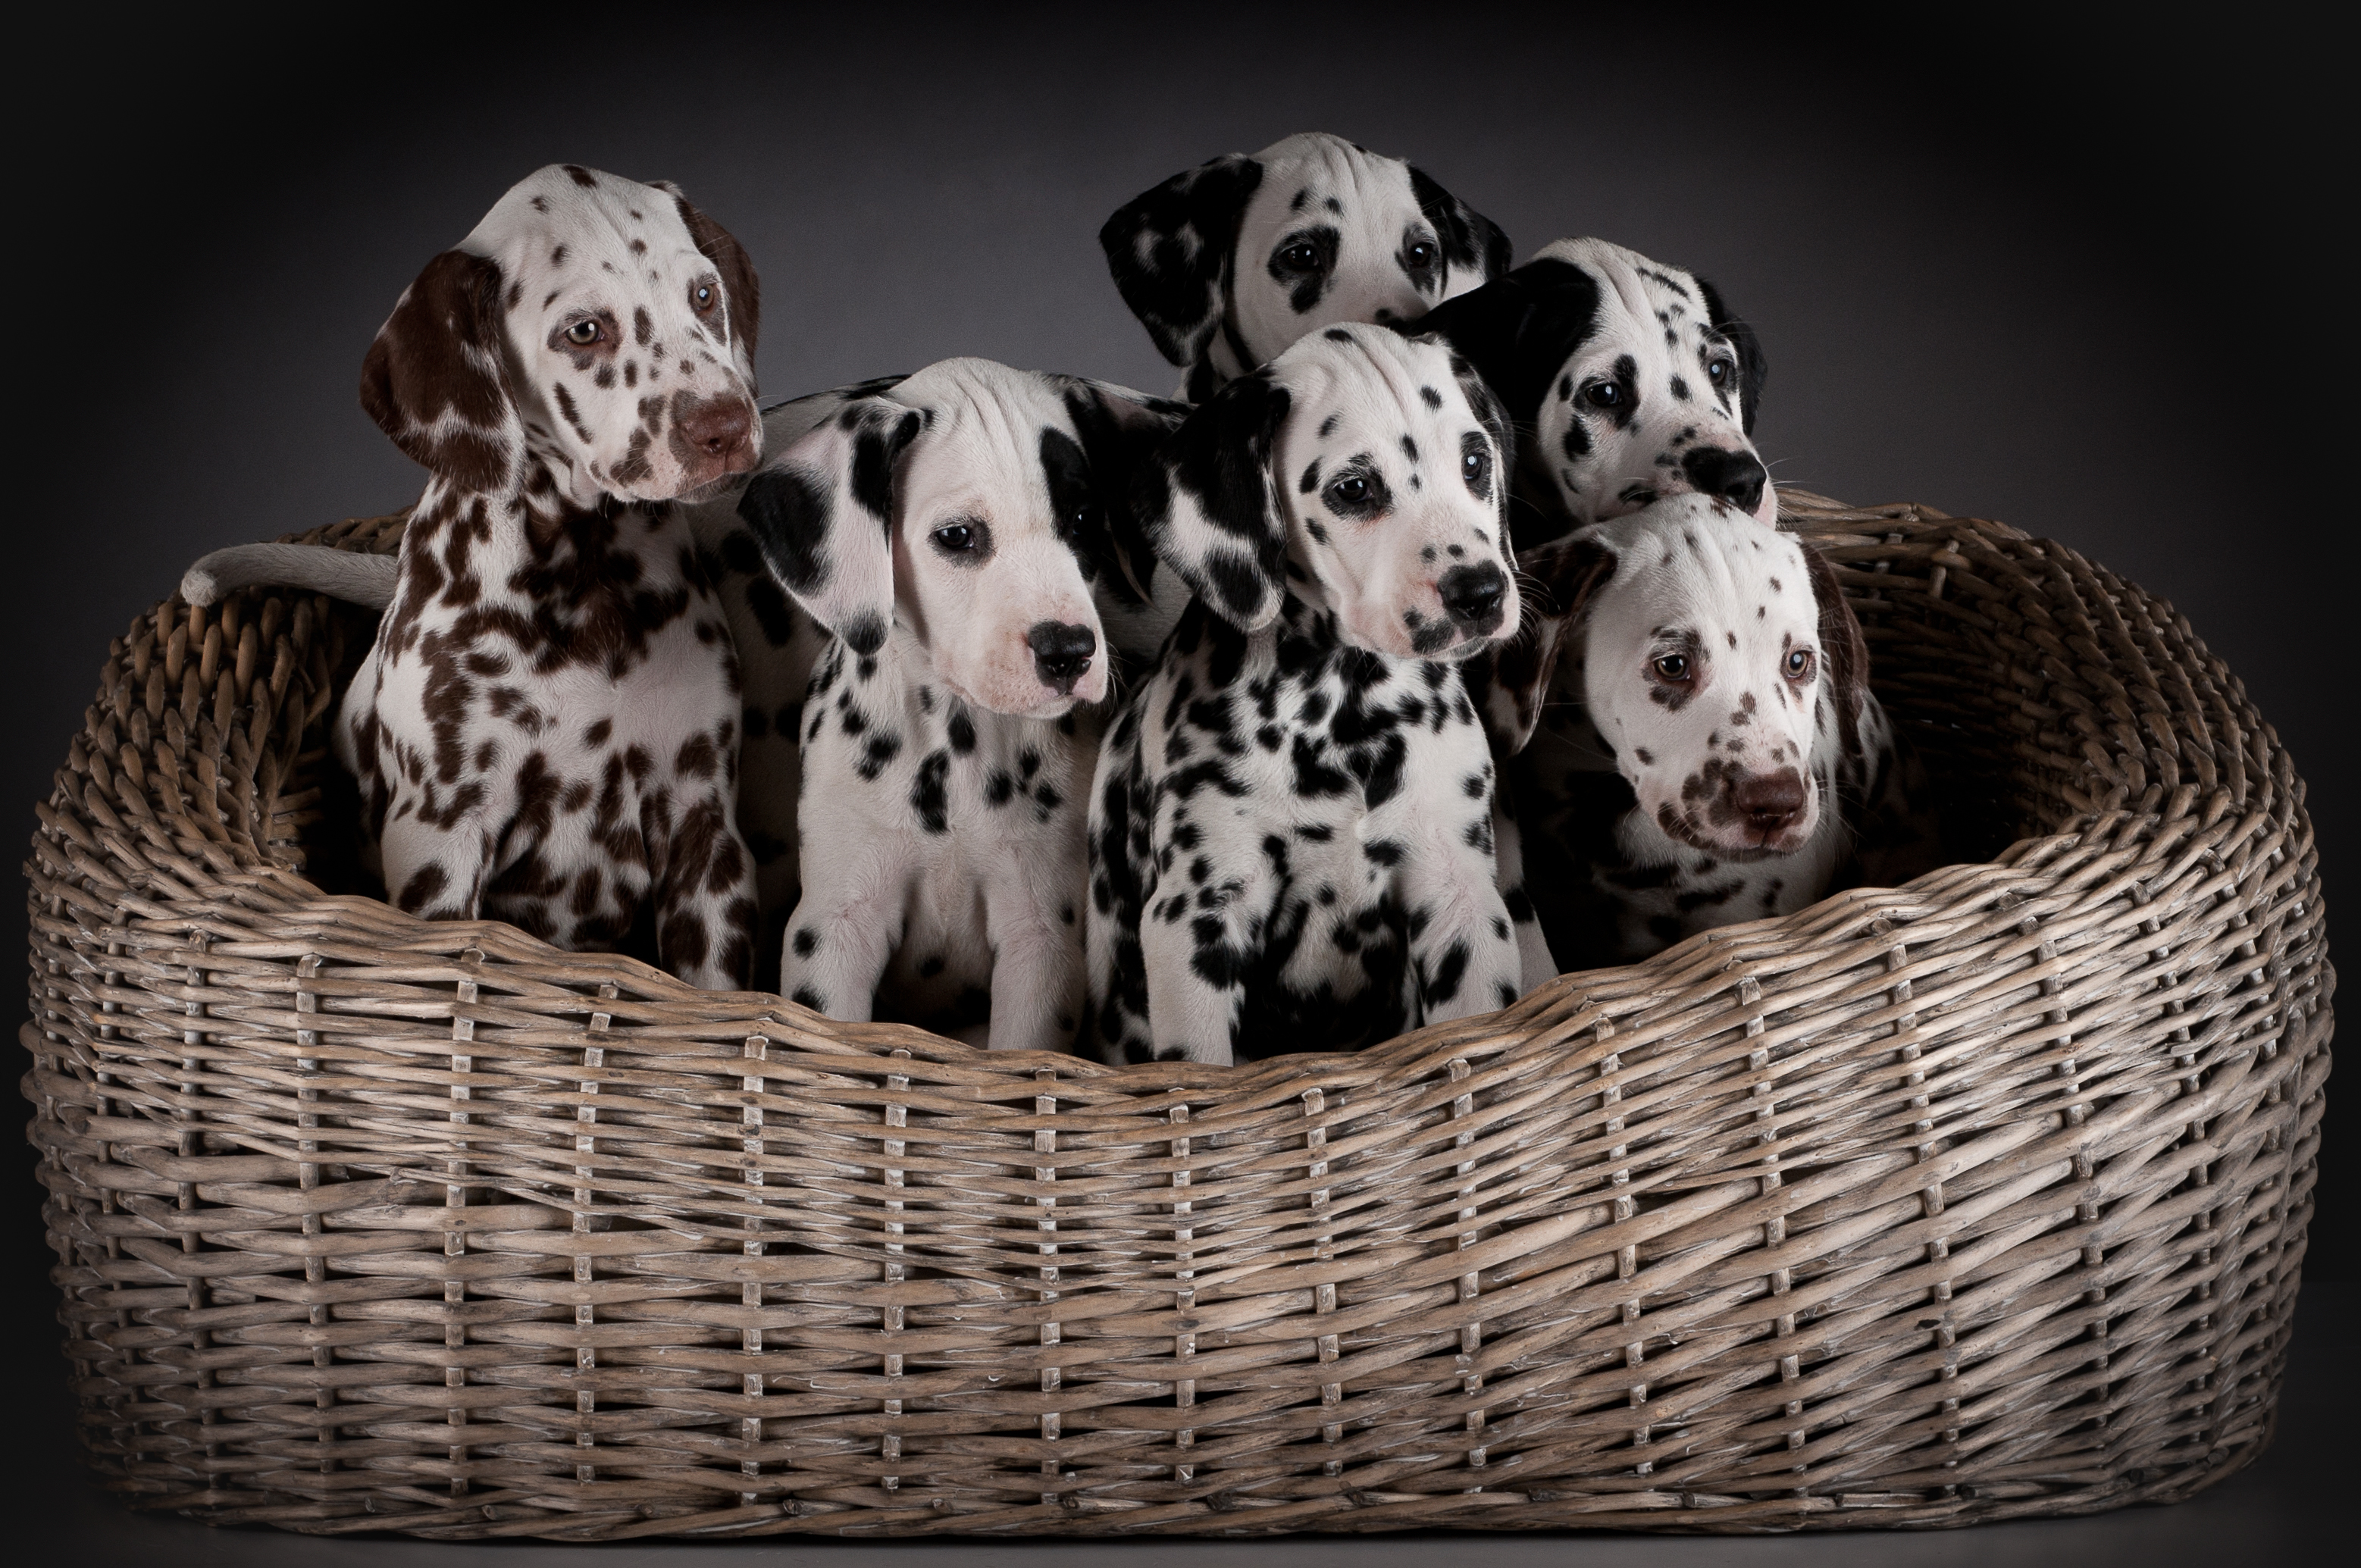 Dalmatian puppies in a basket